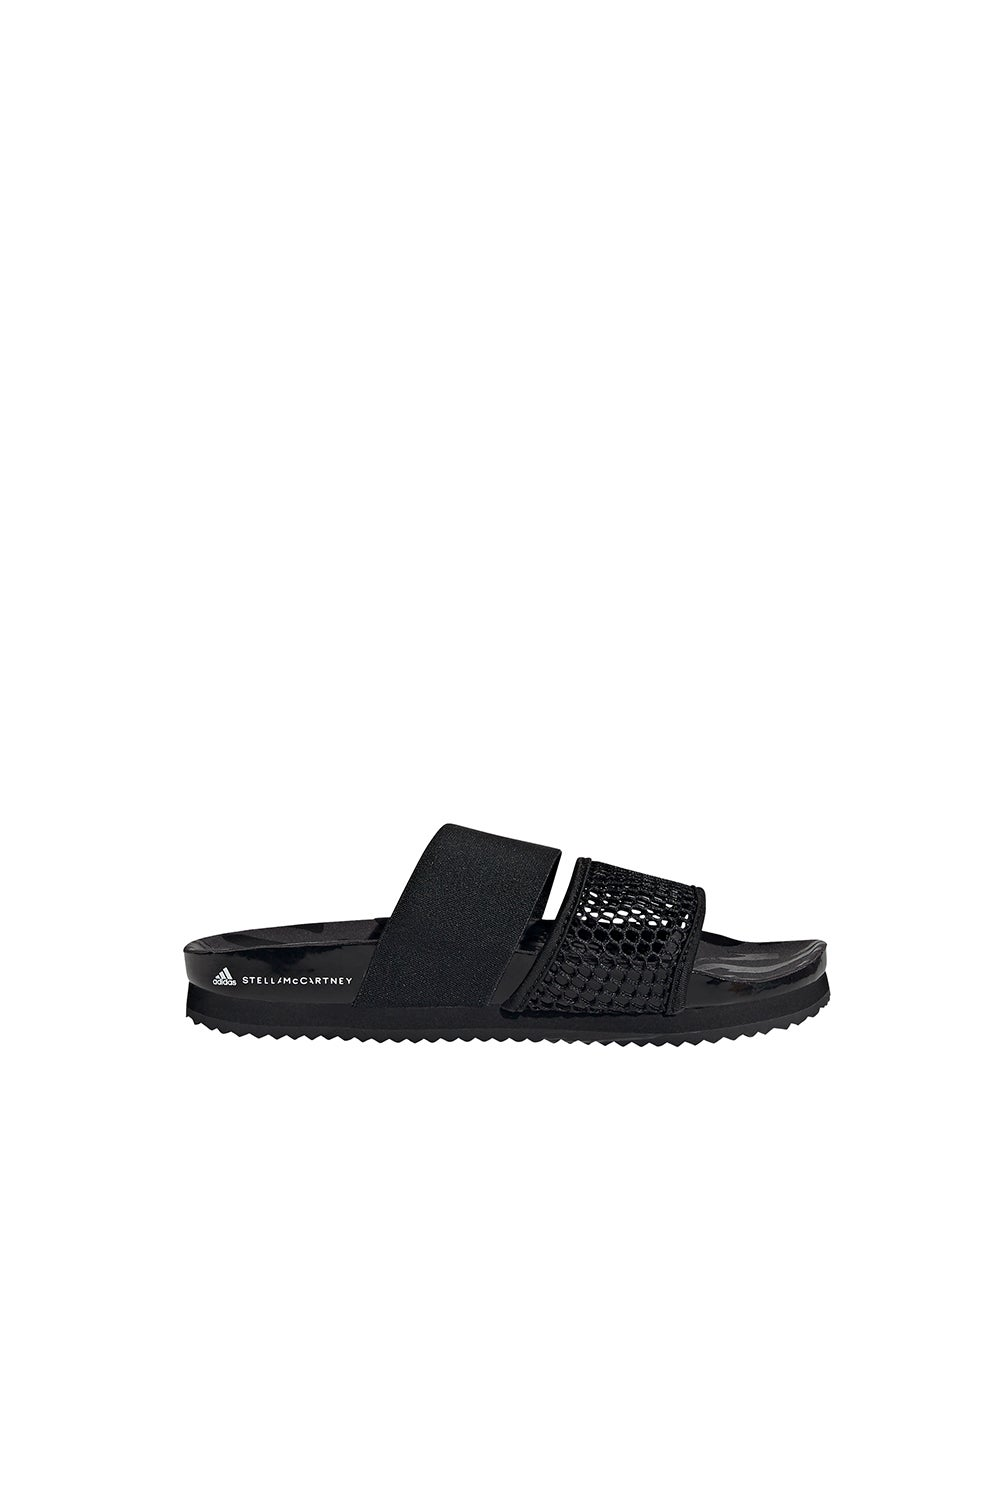 adidas by Stella McCartney Lette Slides Core Black